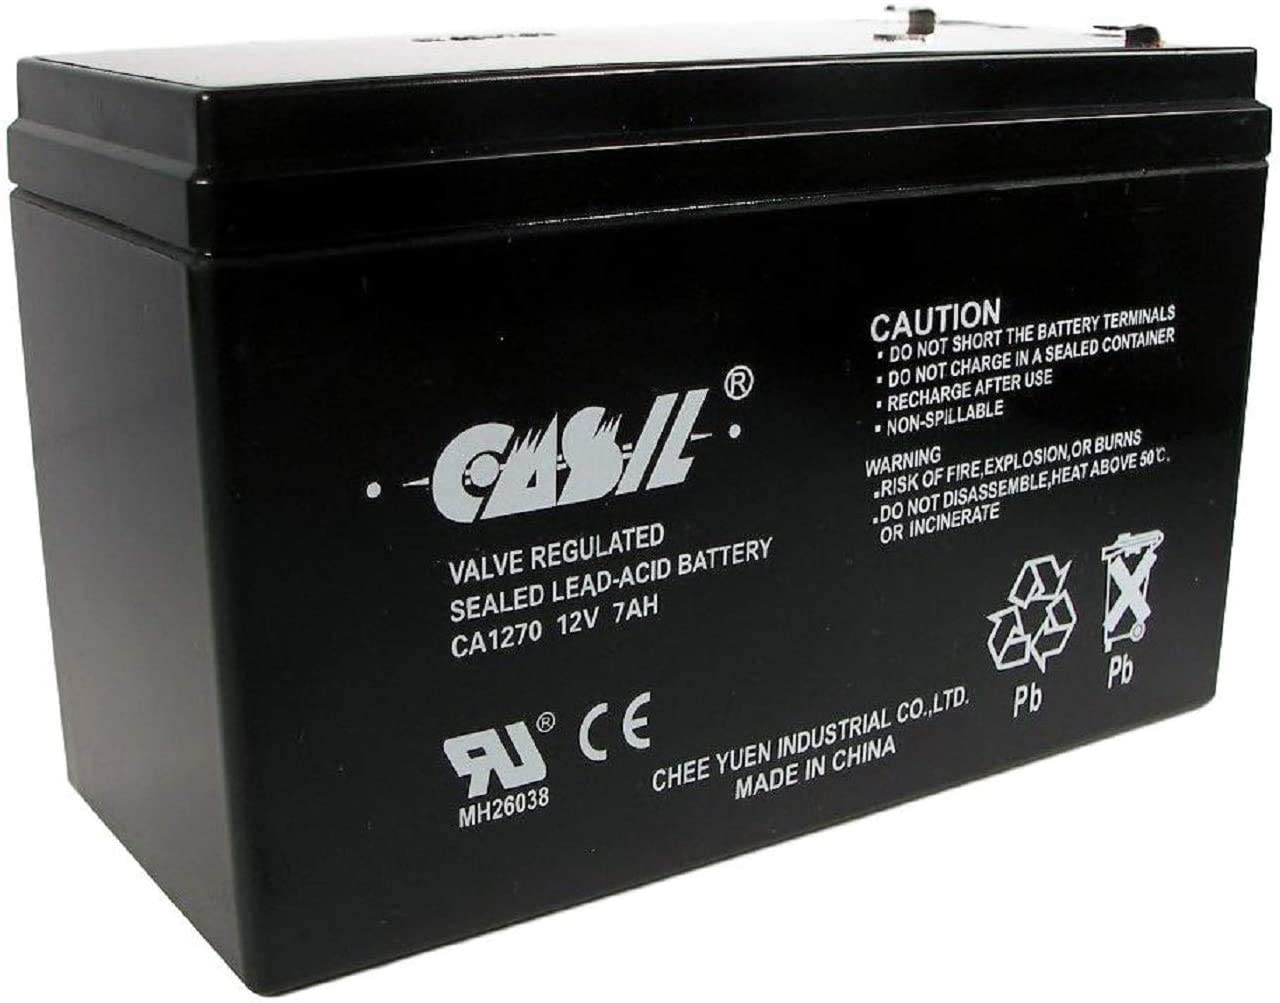 CASIL 12V 7AH CA1270 Mail order cheap Security Replacement 623 Battery Free Shipping New Systems 12